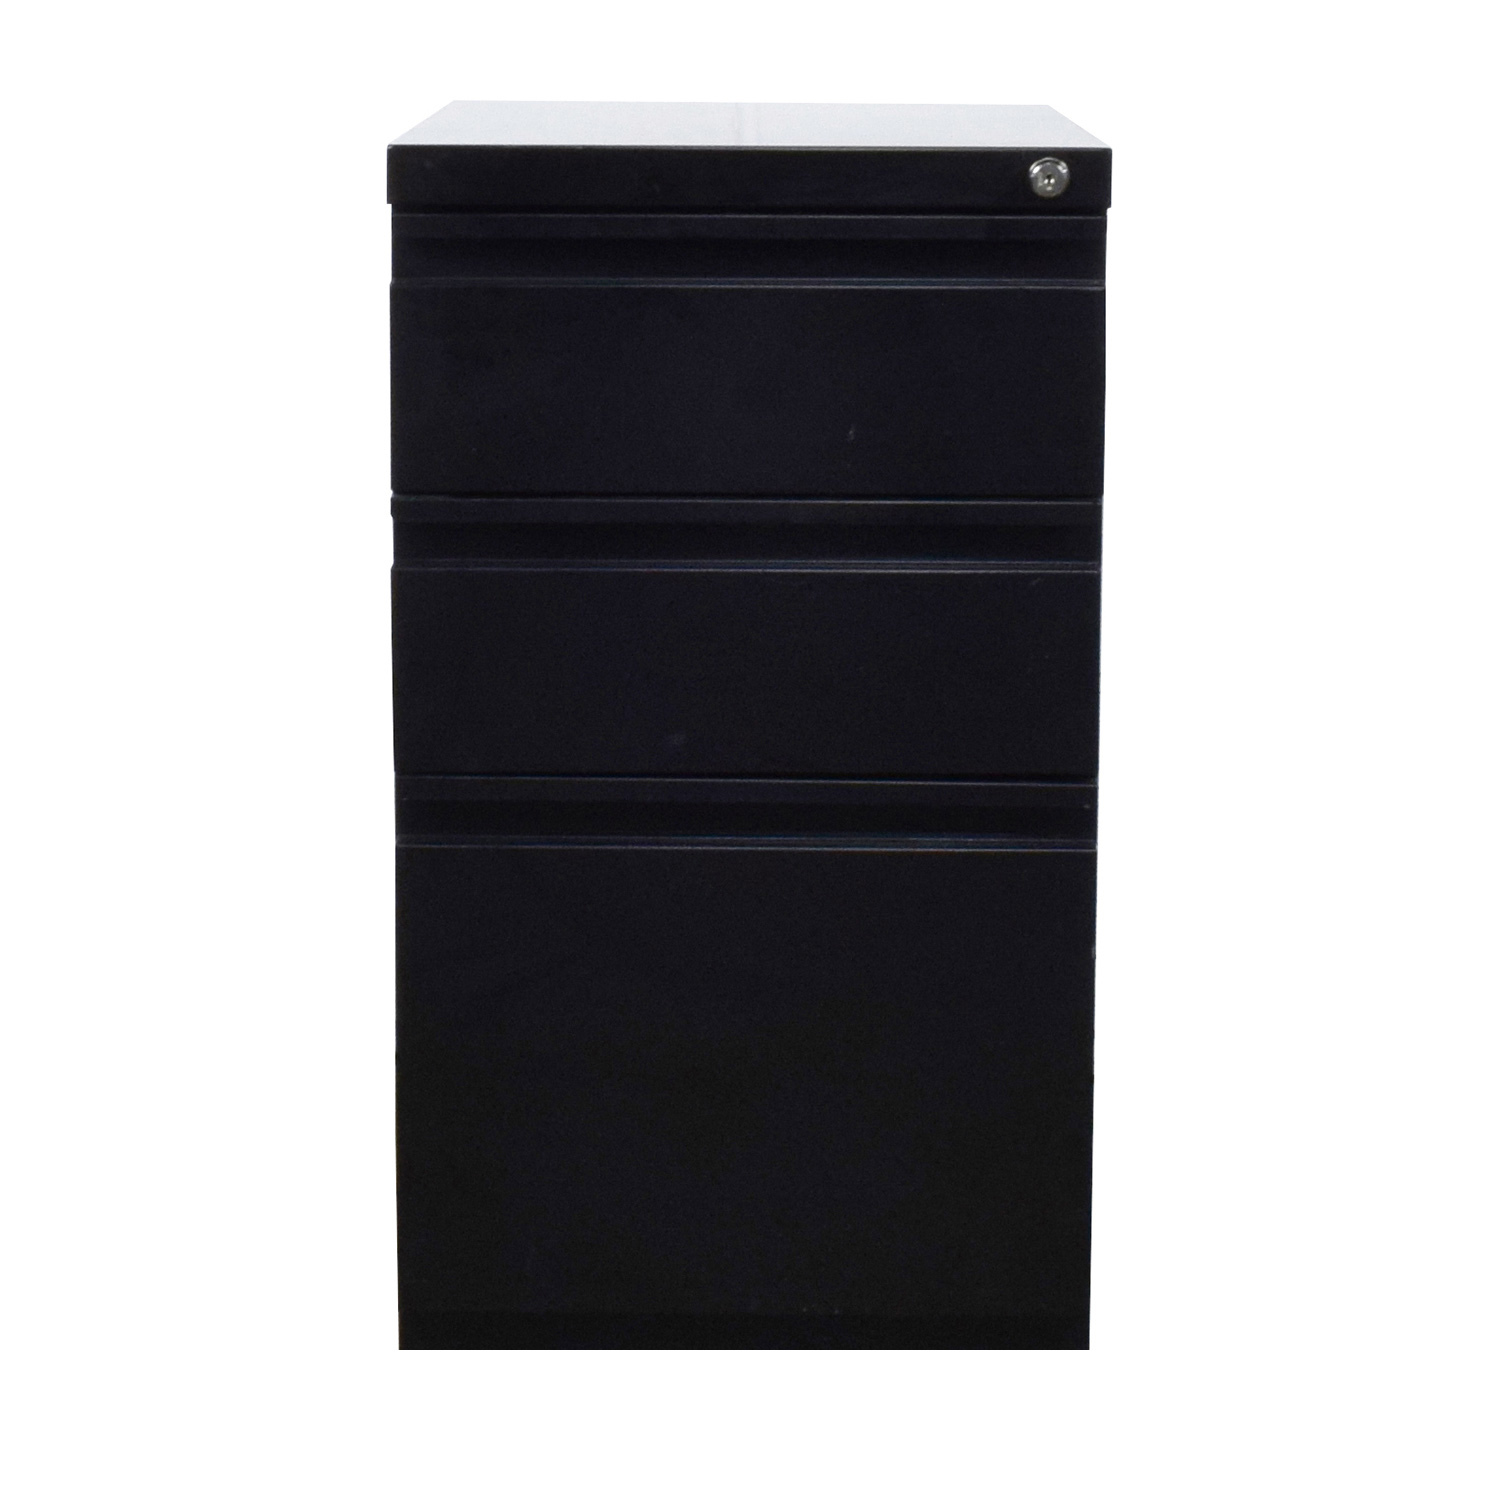 Black File Cabinet dimensions